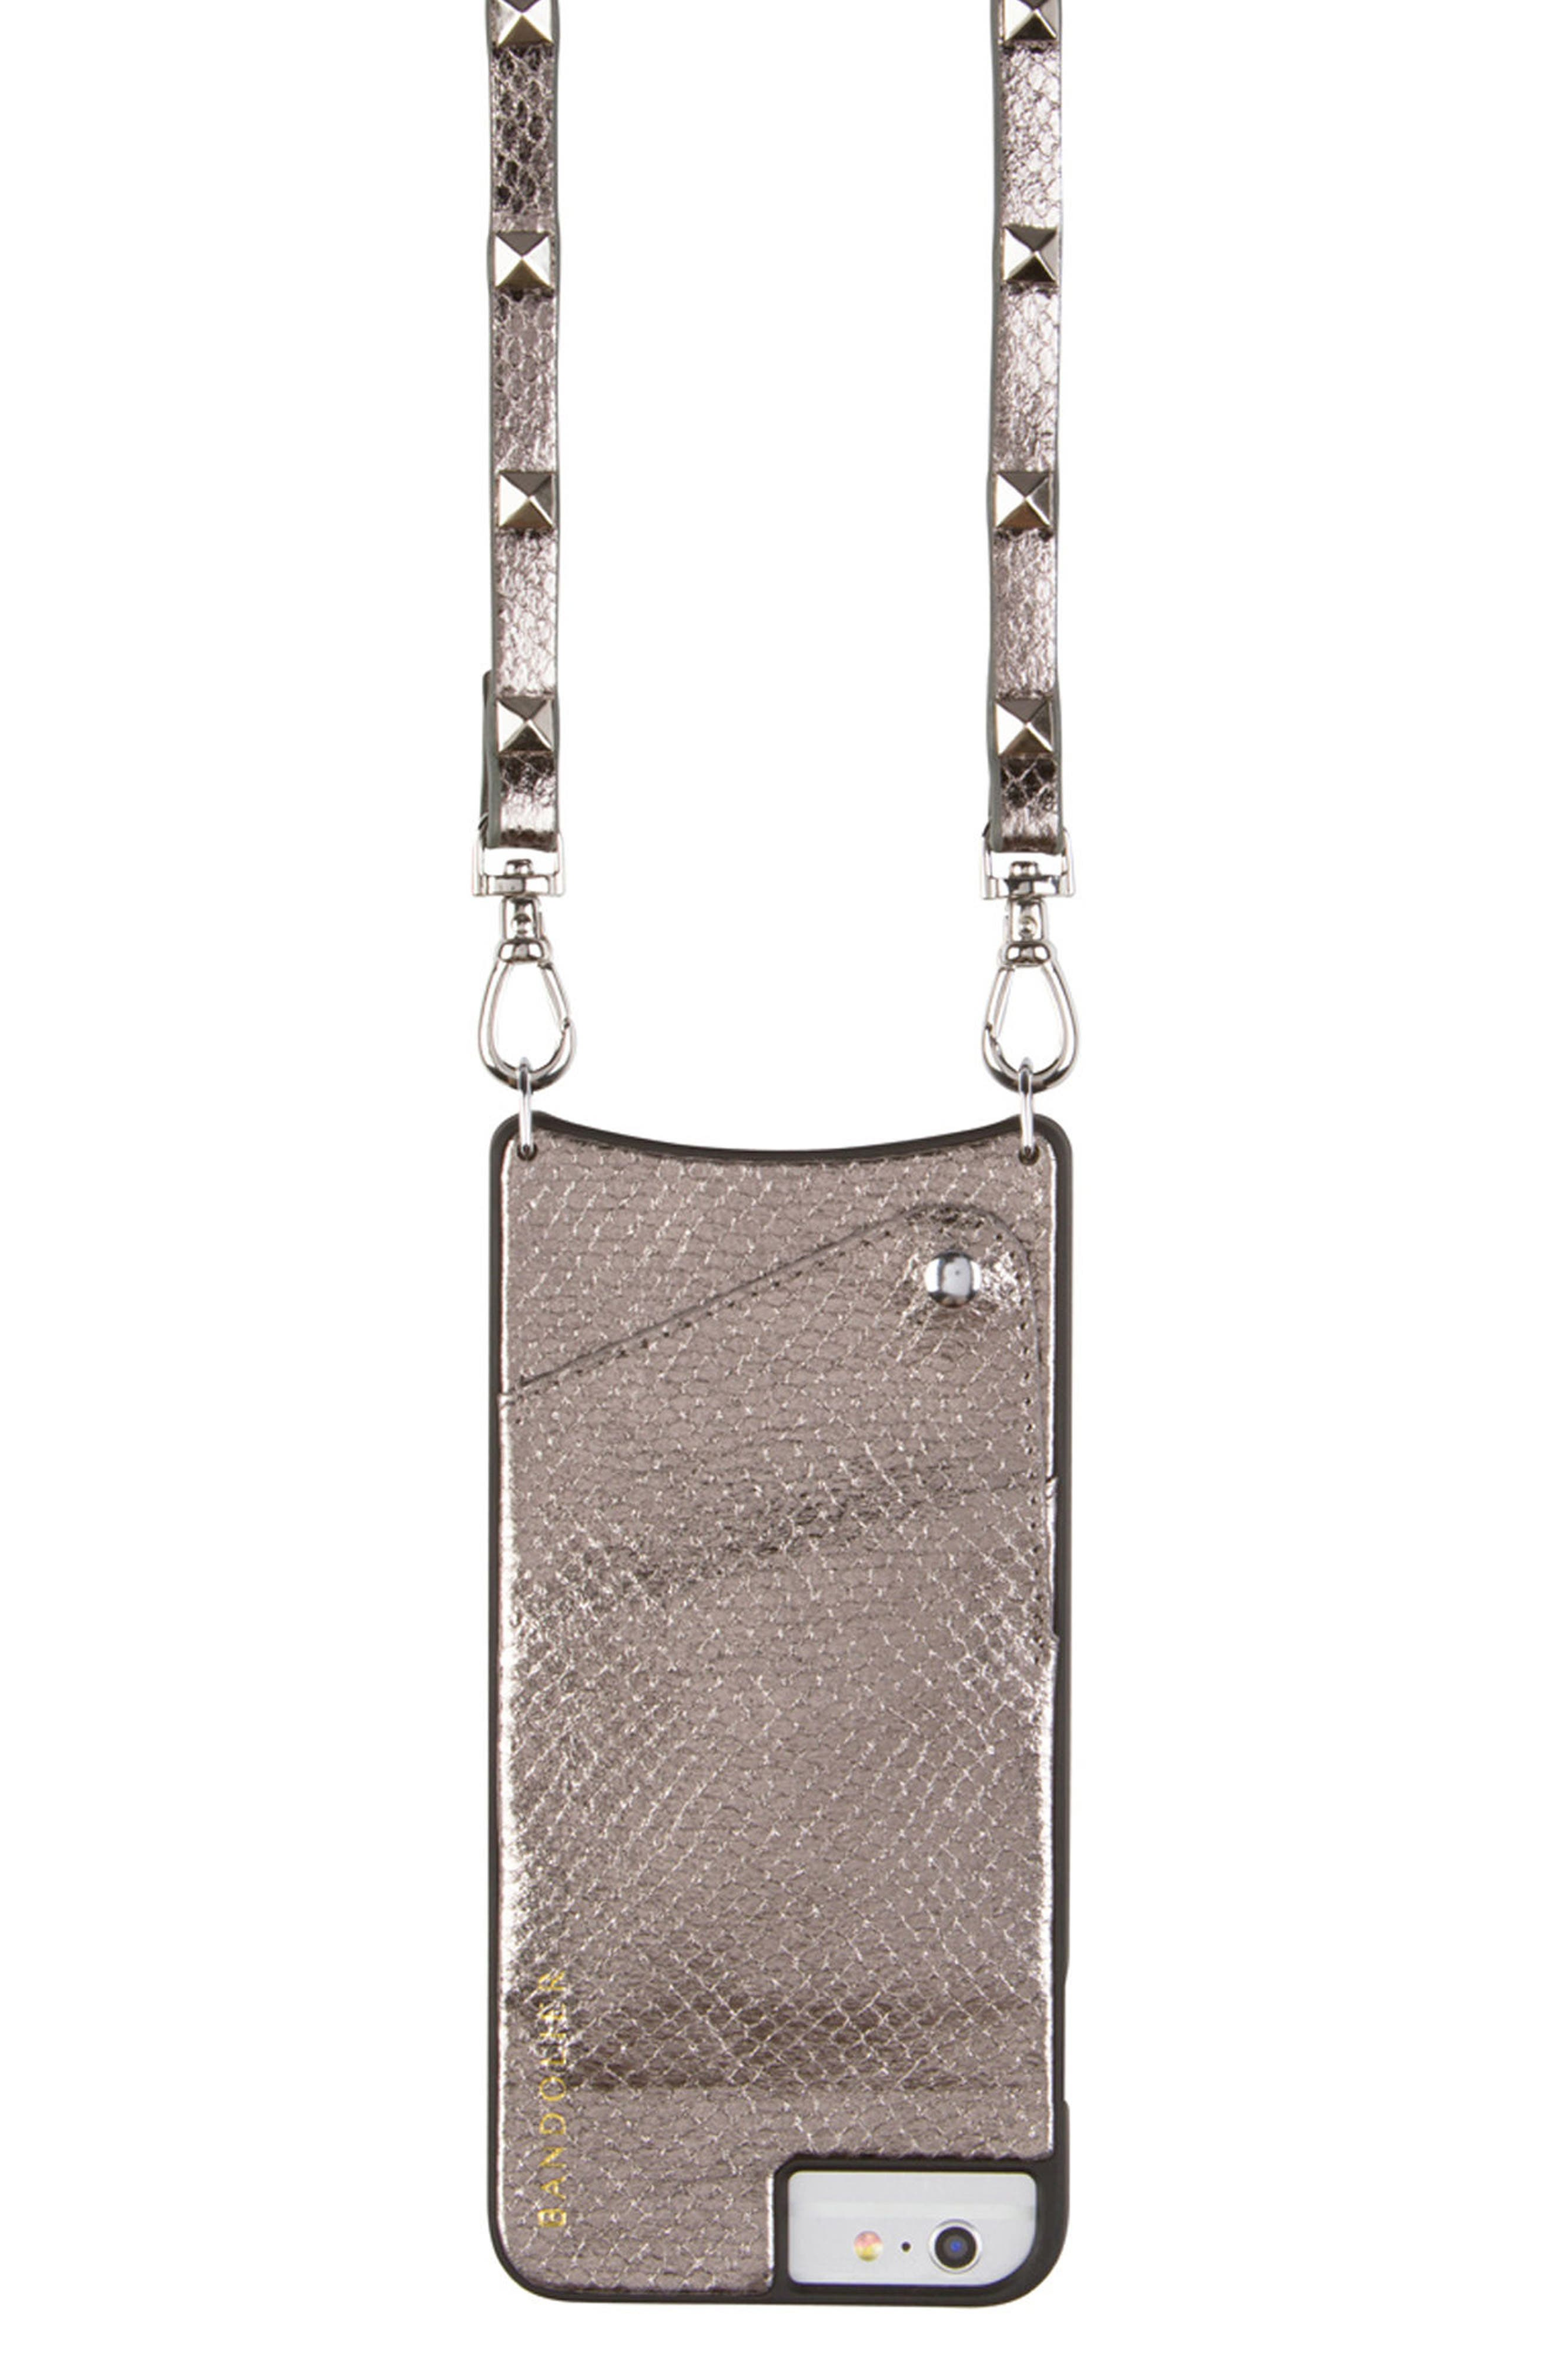 Sarah Metallic Faux Snakeskin iPhone 6/7/8 & 6/7/8 Plus Crossbody Case,                         Main,                         color, Pewter/ Silver